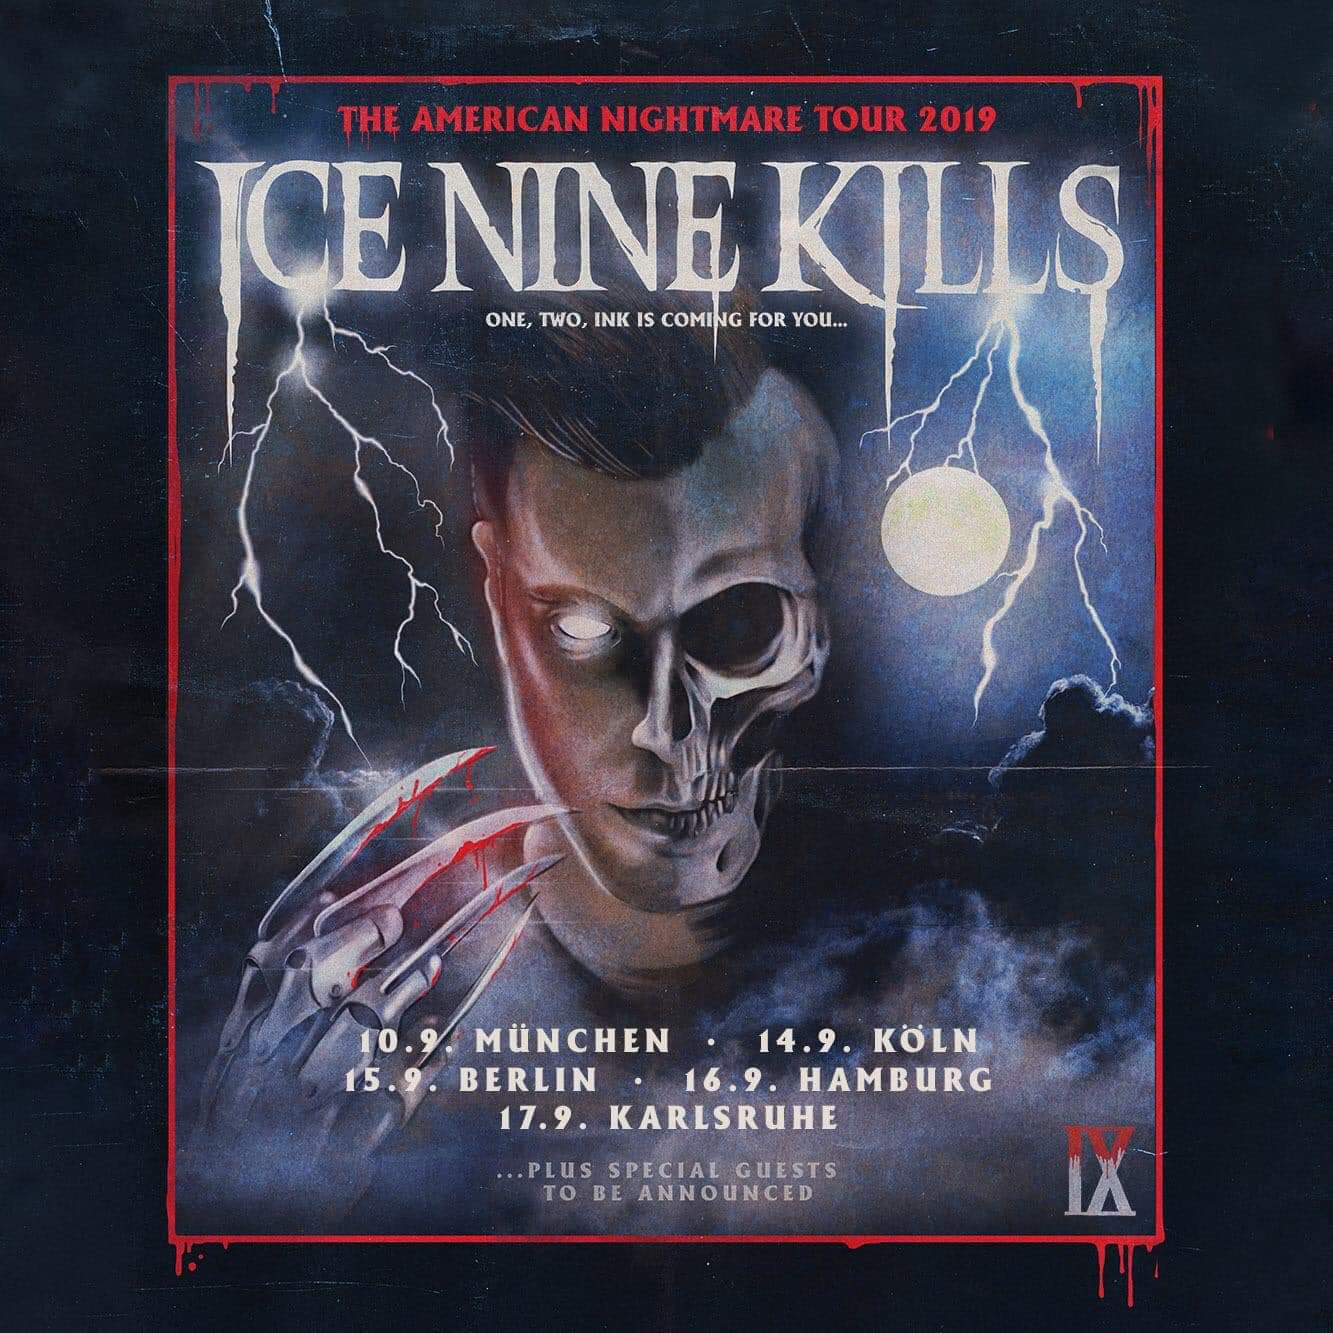 Ice Nine Kills - Fünf Konzerte in Deutschland